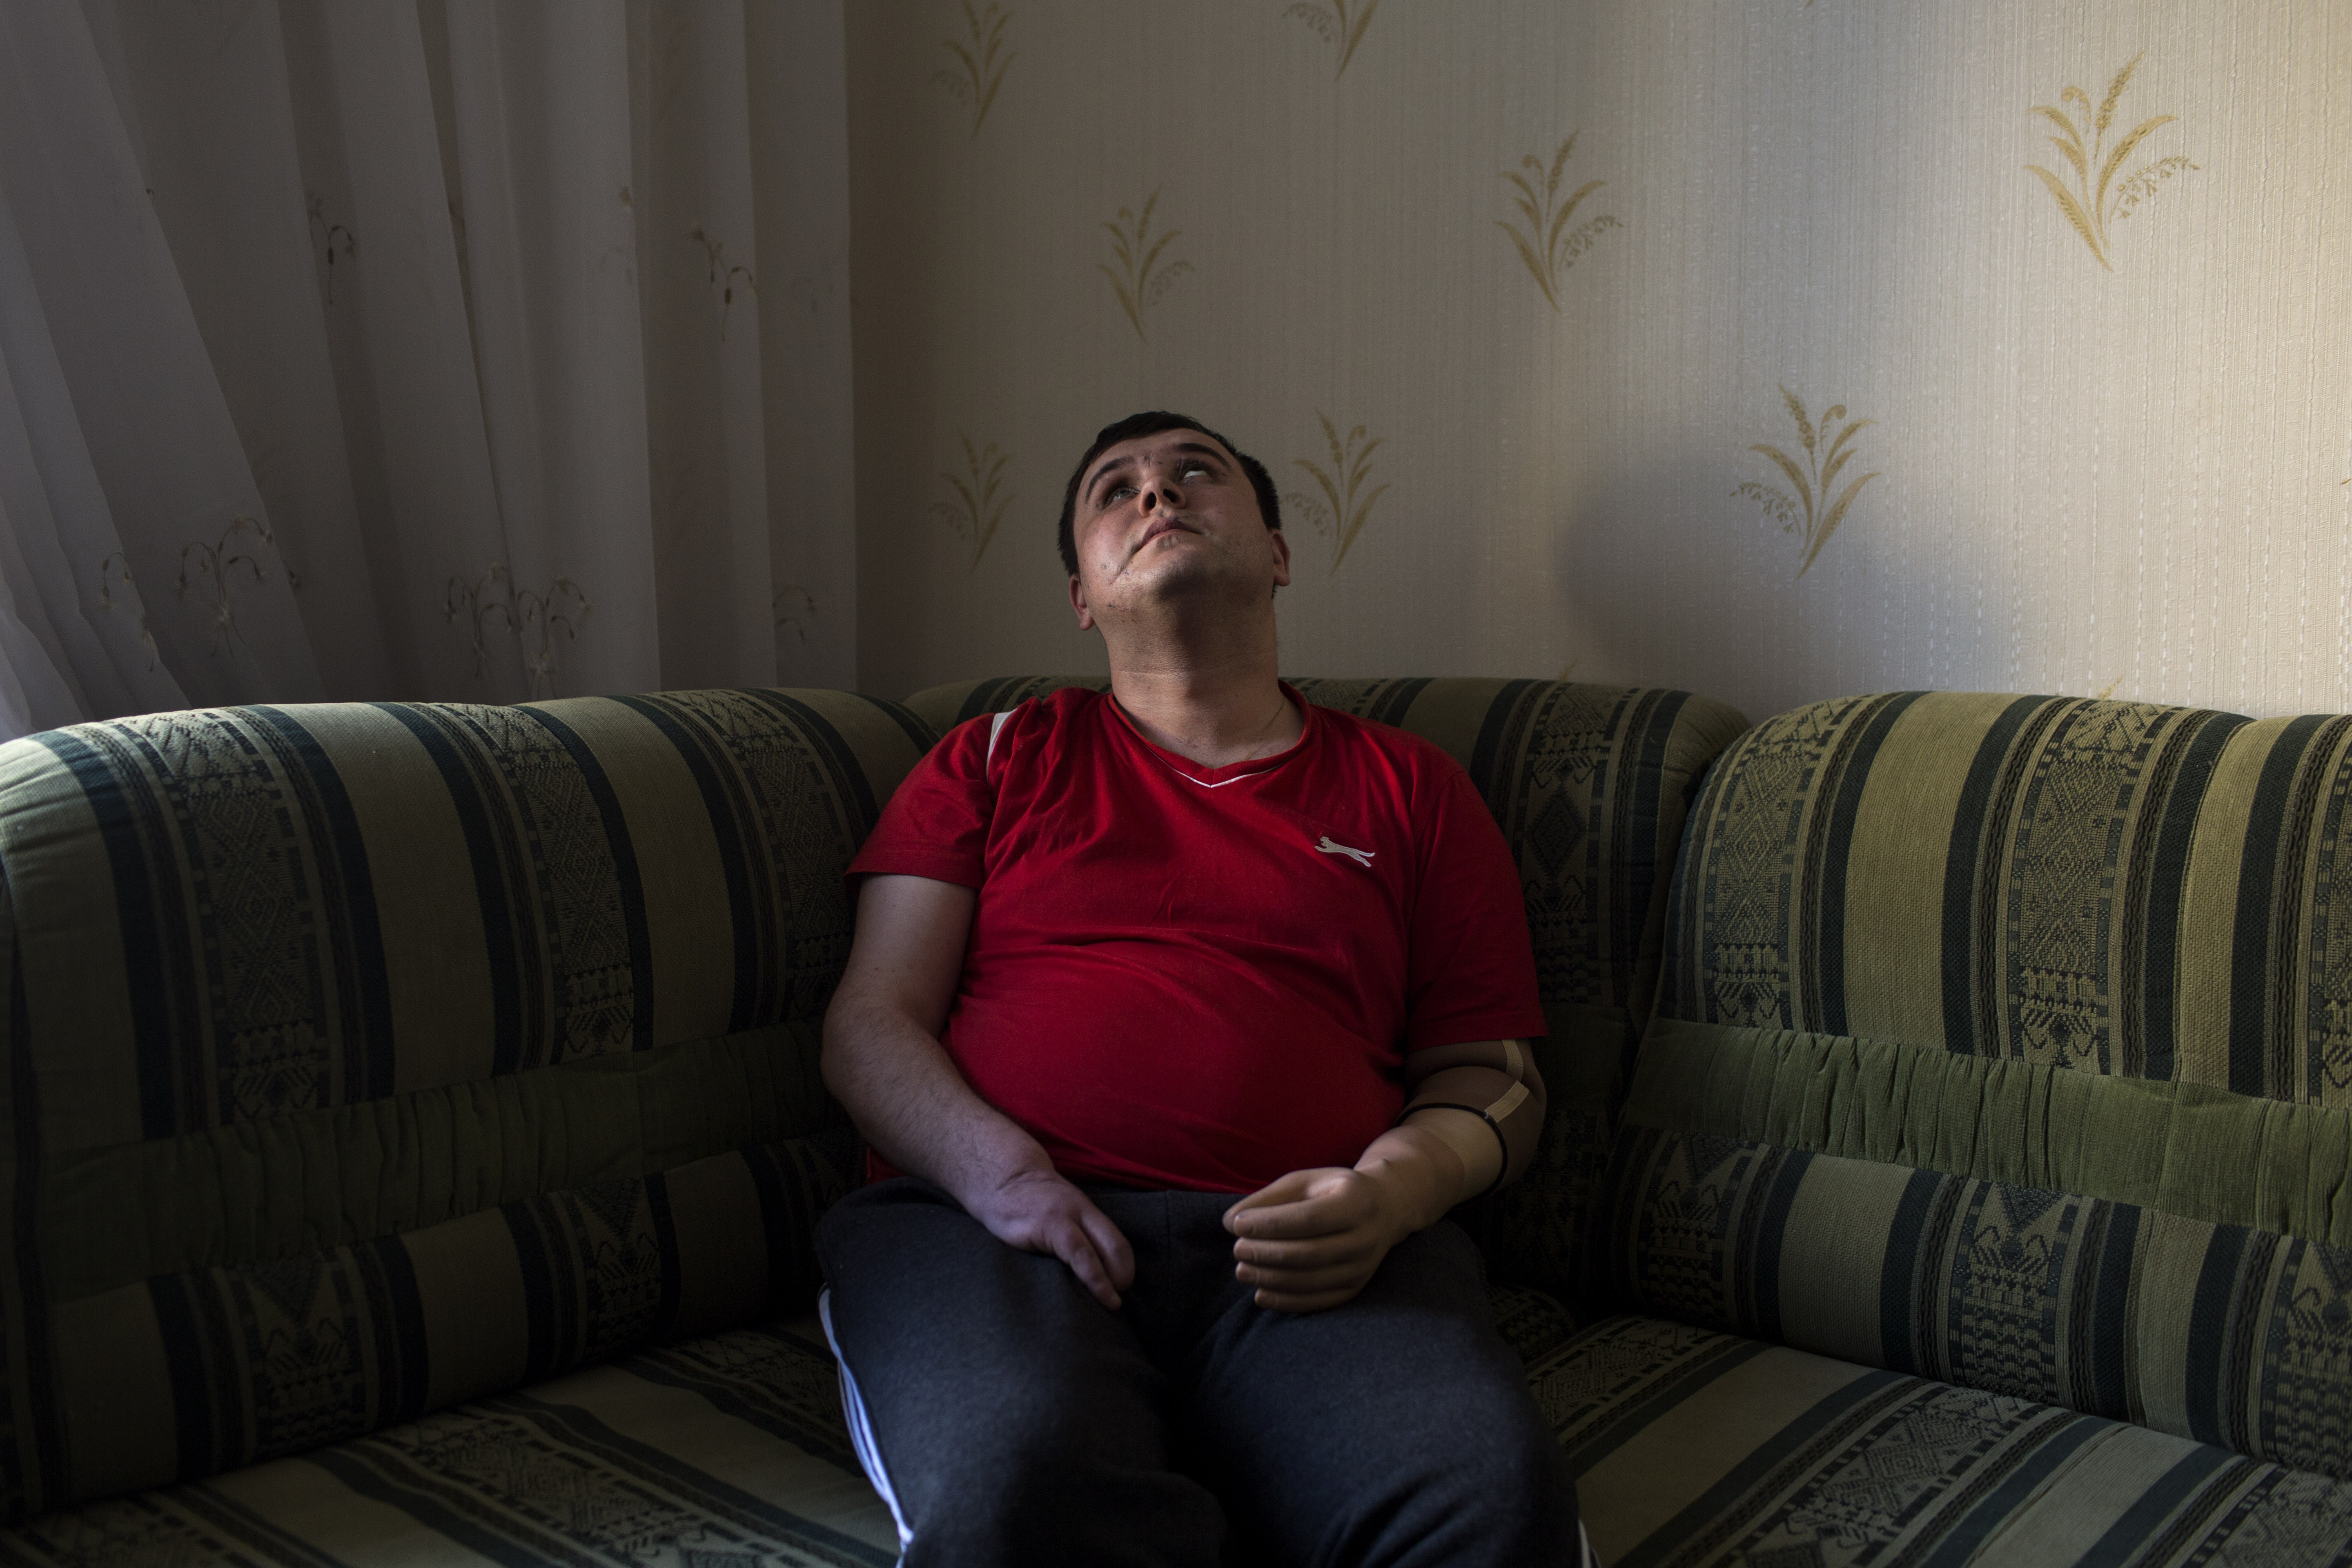 """Ivan Kushnerov, 25, rests on a couch in an apartment where he is staying temporarily in Kiev, Ukraine, March 4, 2015. Kushnerov, who lives in Zaporizhia, was severely wounded in Severodonetsk in November 2014 while serving in the 39th Territorial Defense Battalion of the Ukrainian army. His left hand and three fingers on his right hand were amputated, and he has problems with his vision and legs. He worked in advertising before the war and is currently studying part-time to become a journalist. """"I feel the pain. Sometimes it is phantom pain. I often have a headache, and my scars ache. This pain is always with me. But, if you feel pain, it means you are alive,"""" he said. """"I am now distracted by a lot of things. I require medical treatment, but I want to tighten my fists and go there [to war] because I am very worried about my guys. However, I realize that I will be only a burden for them now."""""""